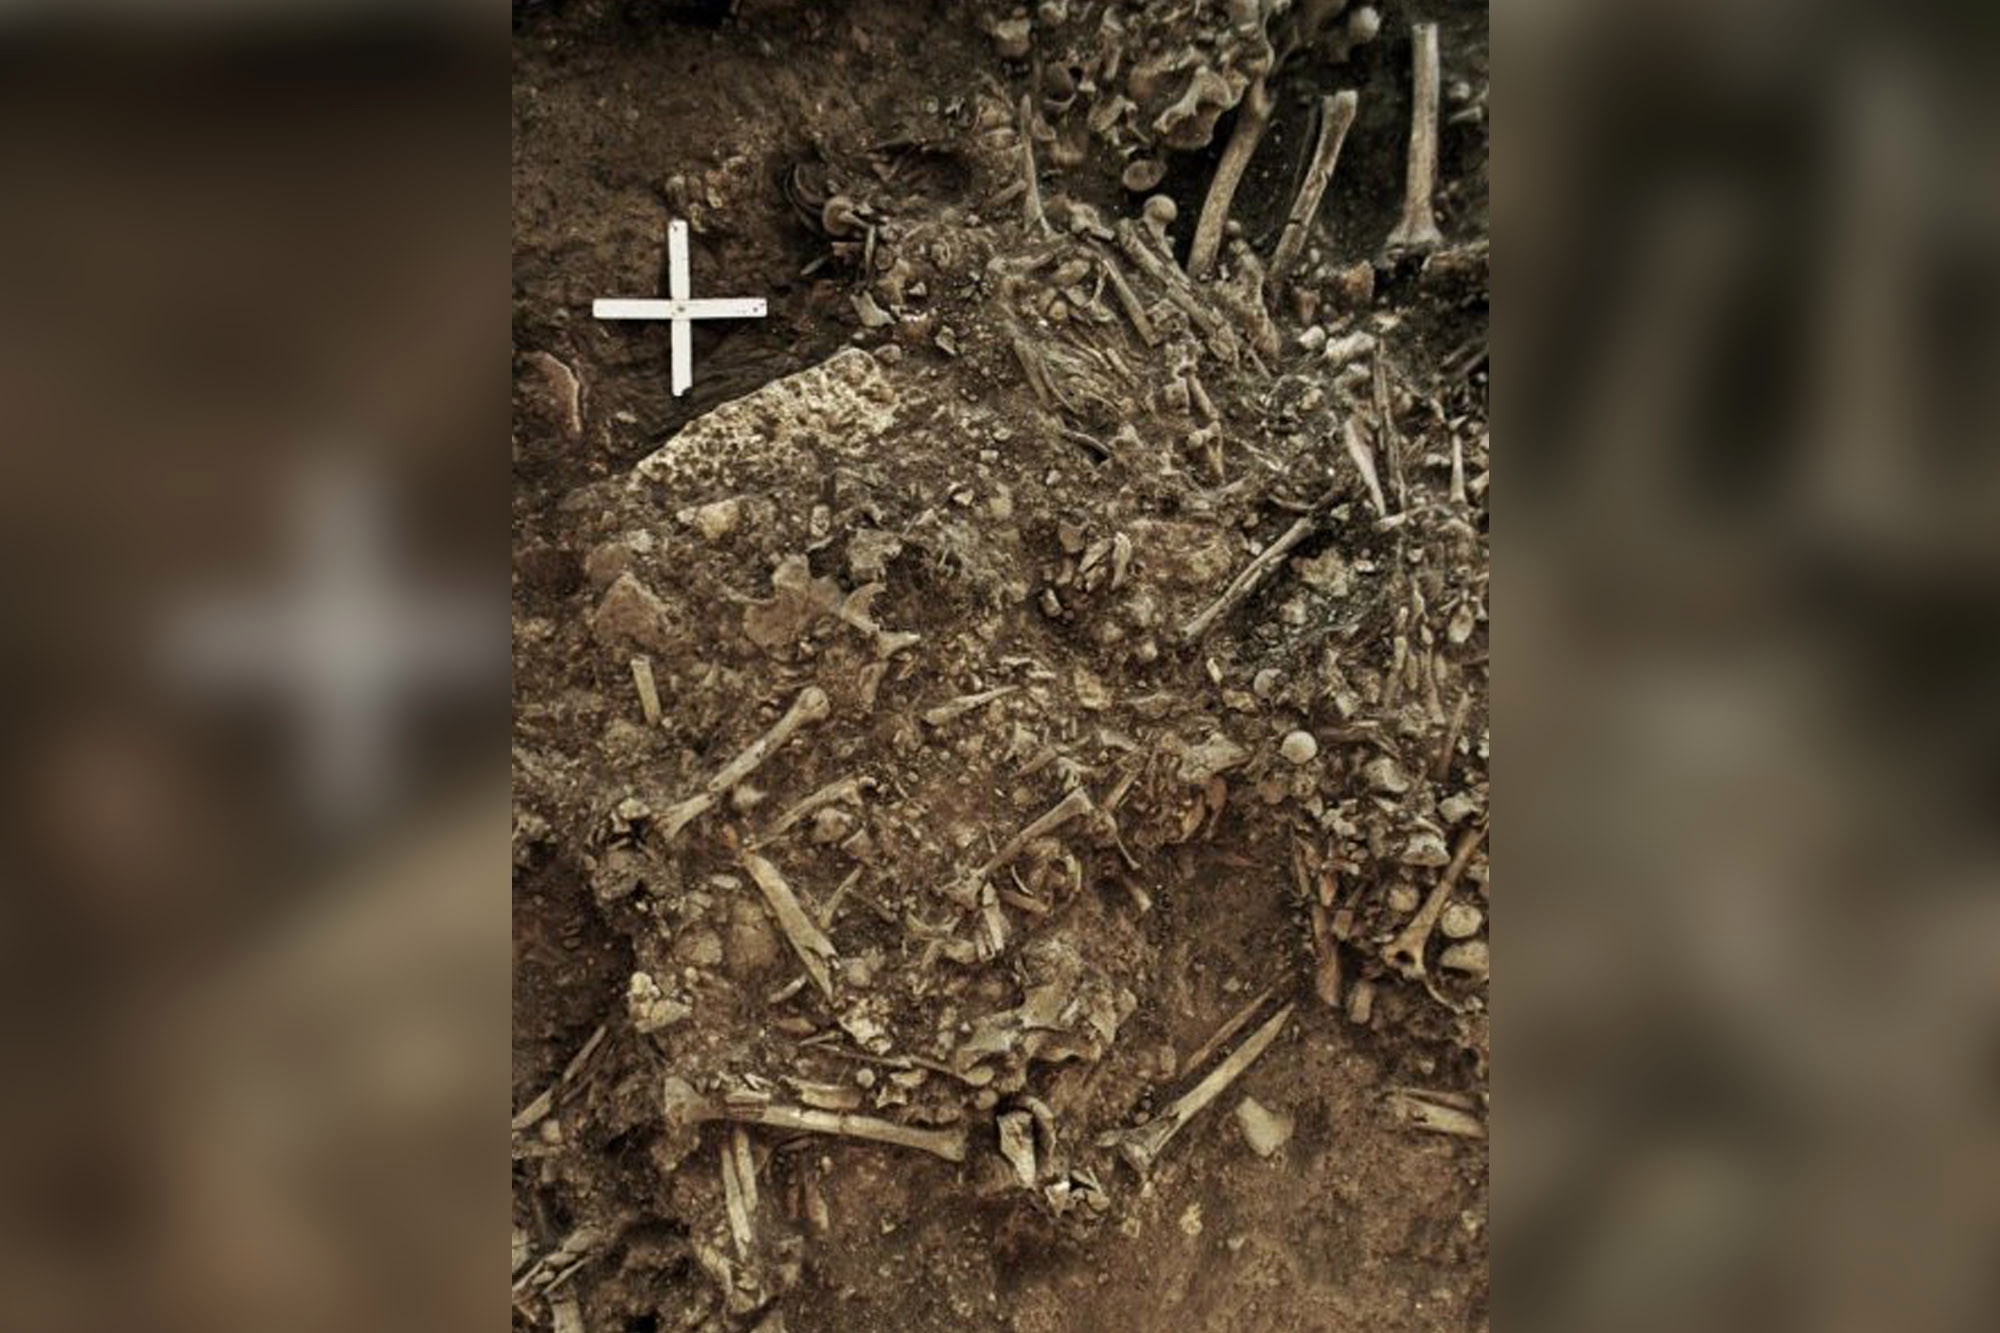 Oldest strain of plague found in 5,000-year-old human remains